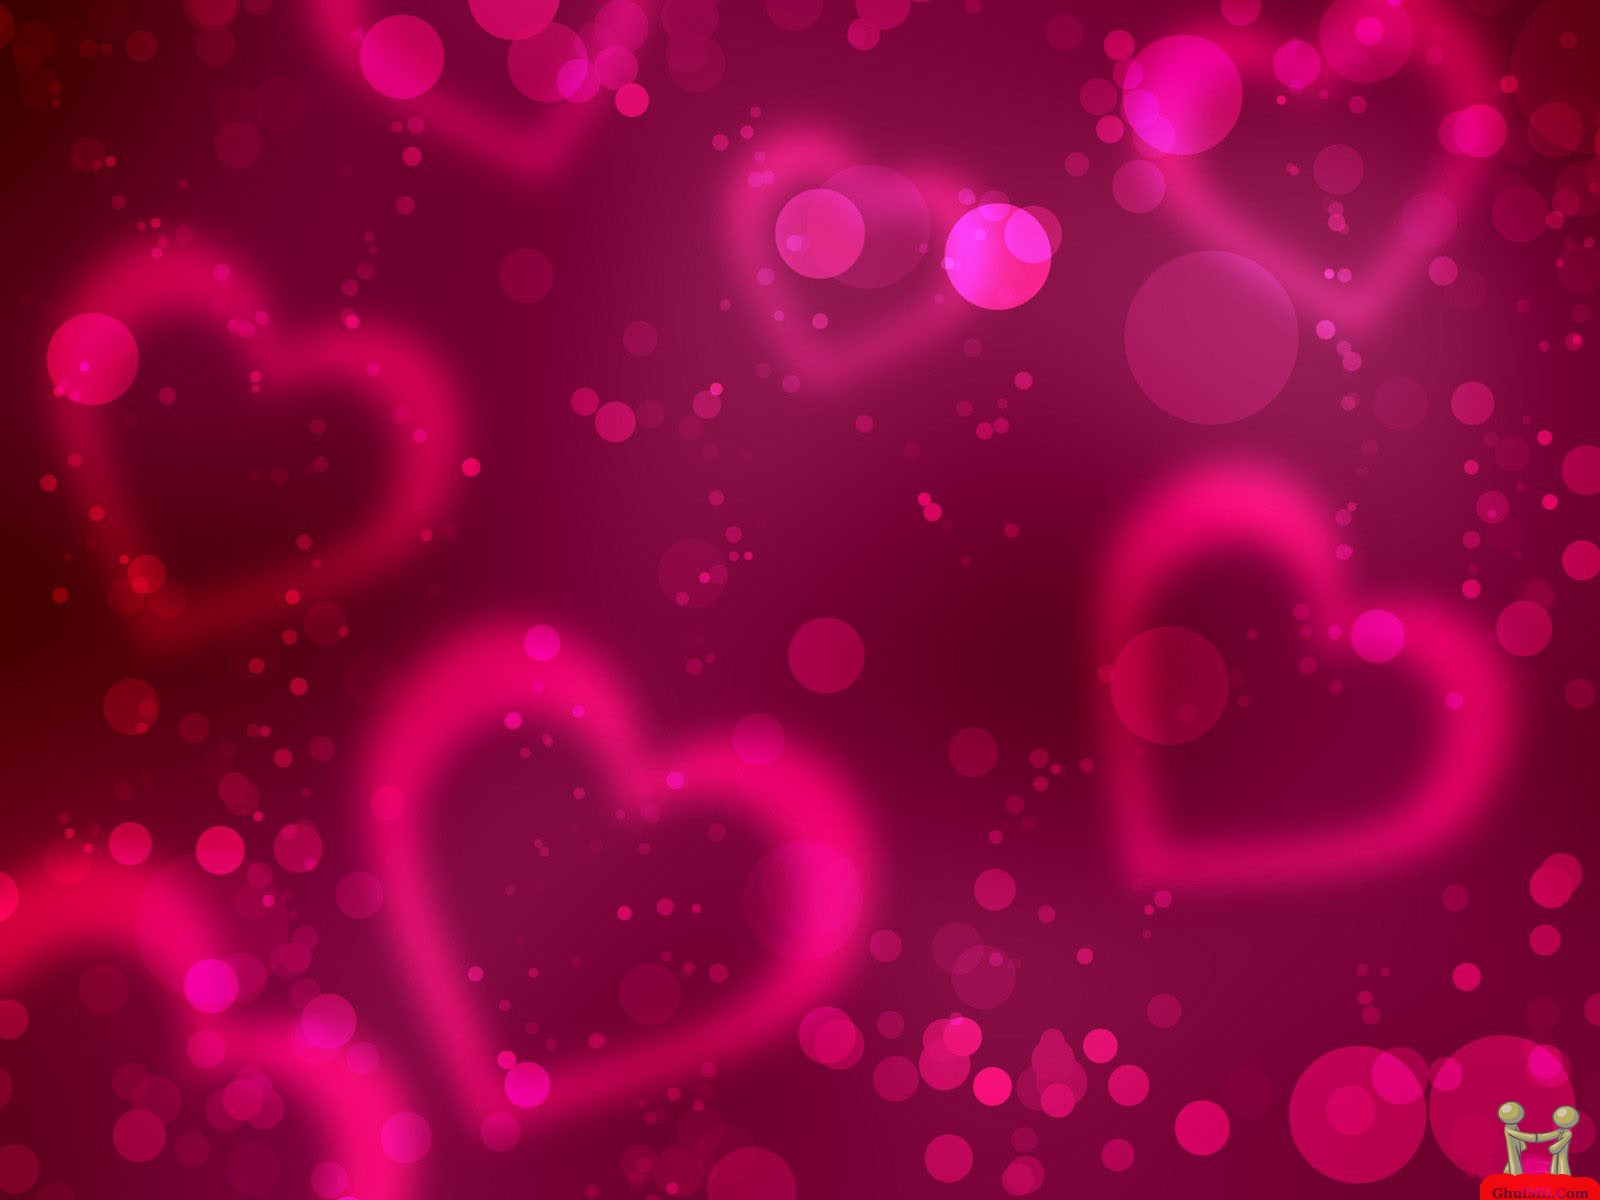 Love Heart Wallpaper Background Hd : 3D Love Heart Wallpaper 4 cool Hd Wallpaper - Hdlovewall.com